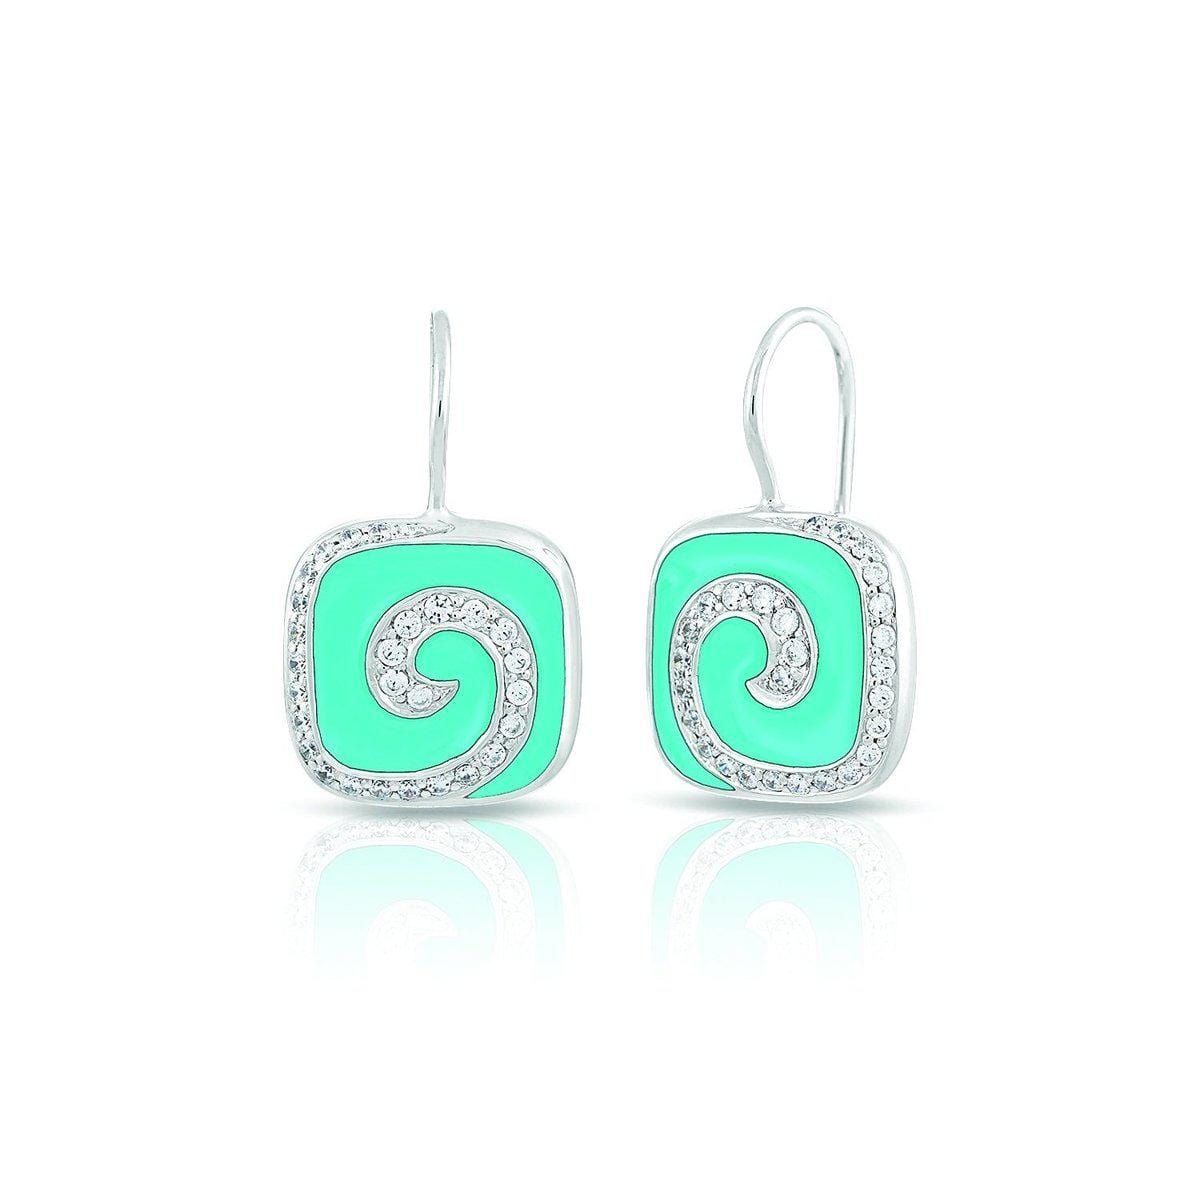 Swirl Turquoise Earrings-Belle Etoile-Renee Taylor Gallery